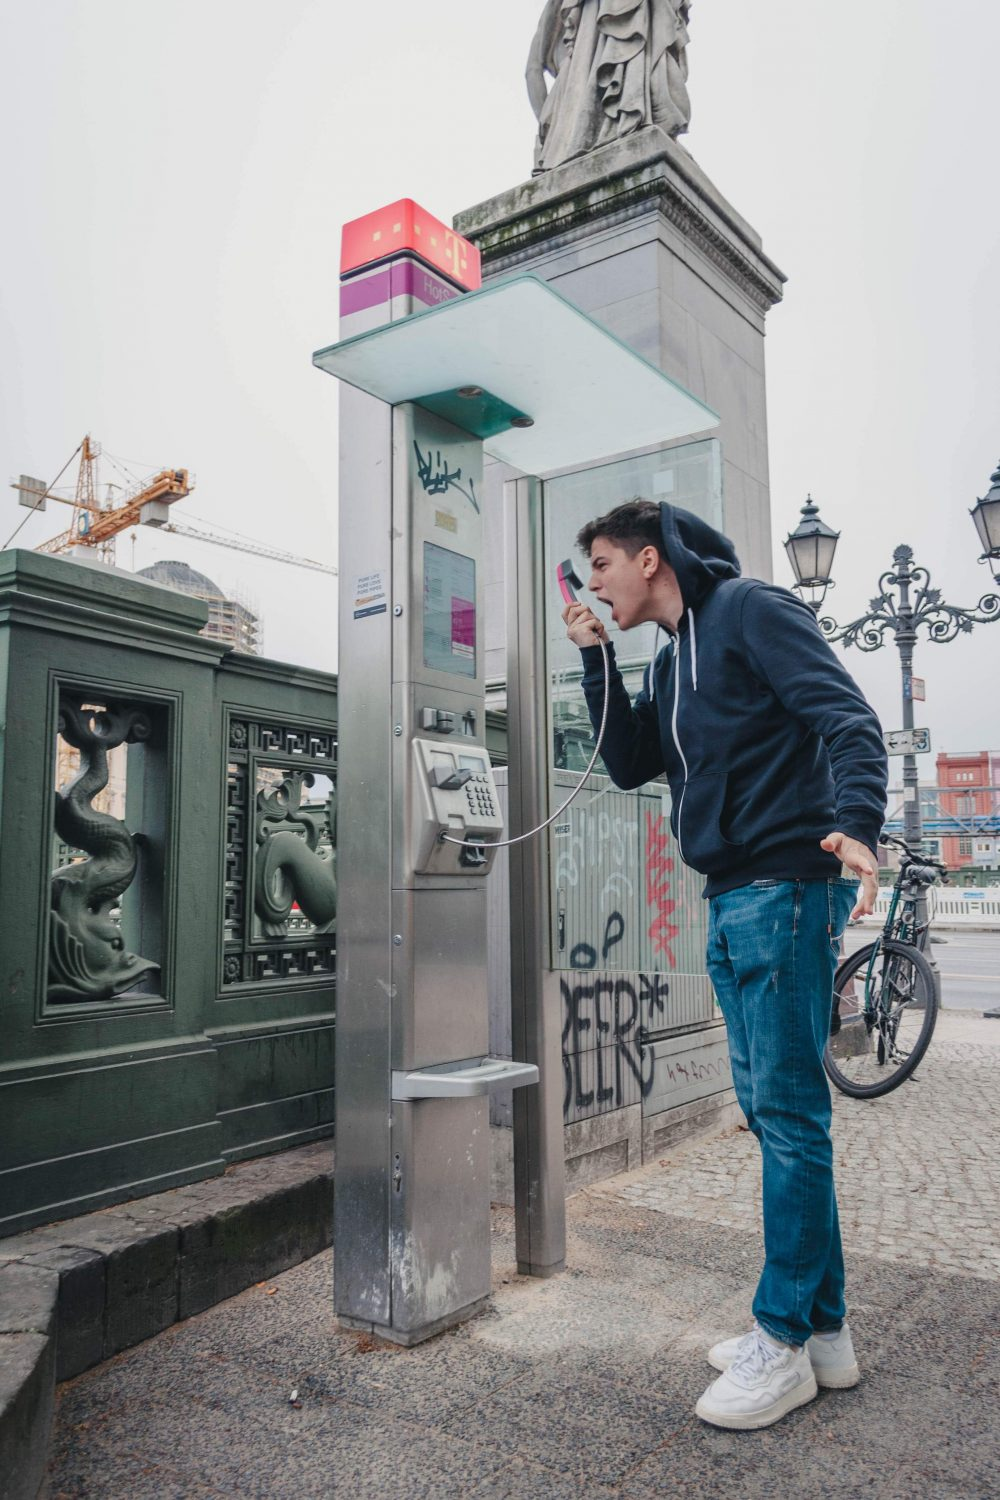 Man shouting into a telephone box